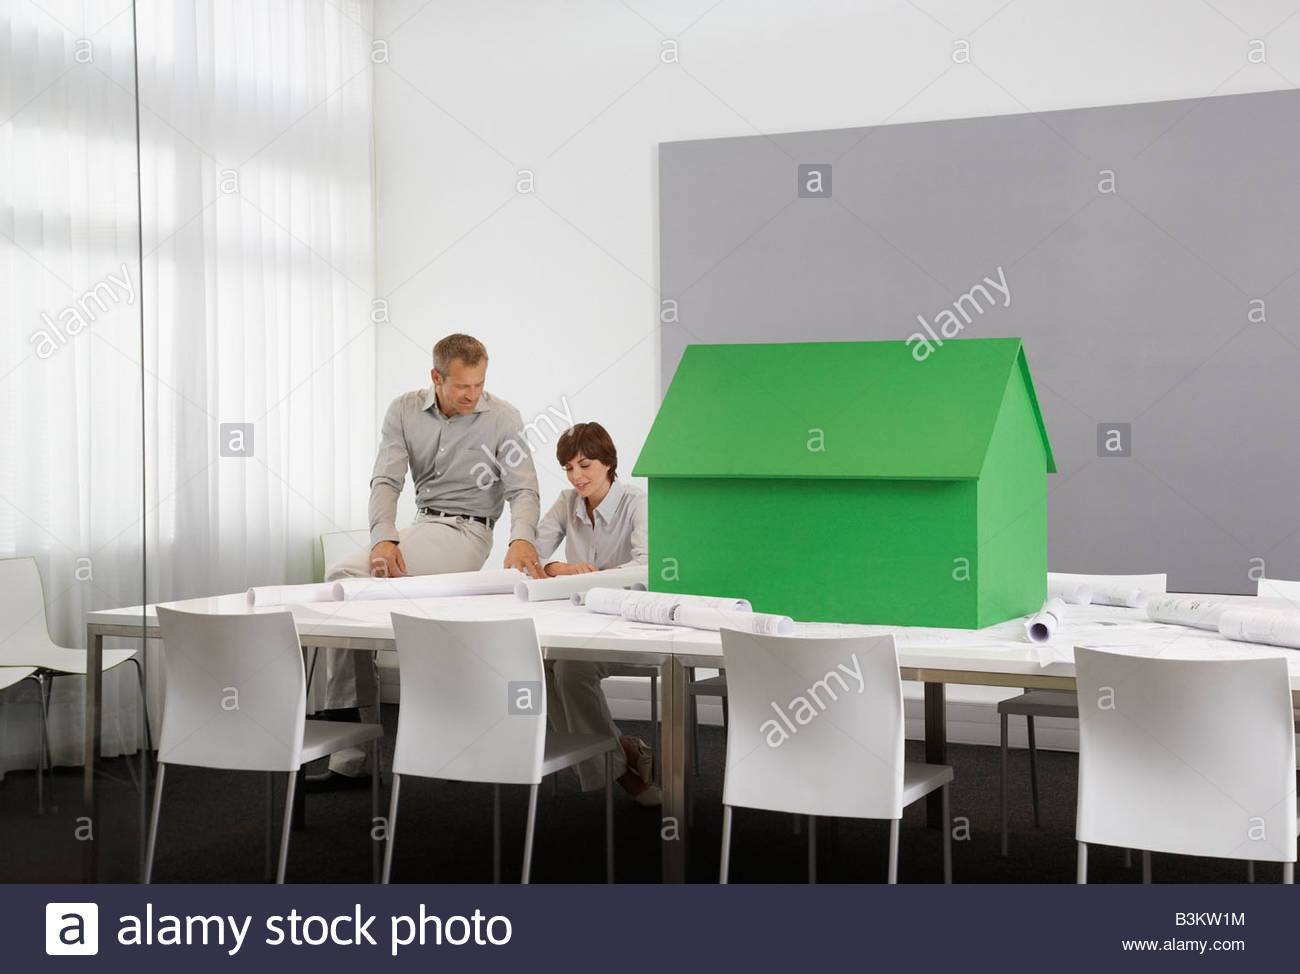 Business people with small model house on conference table - Stock Image